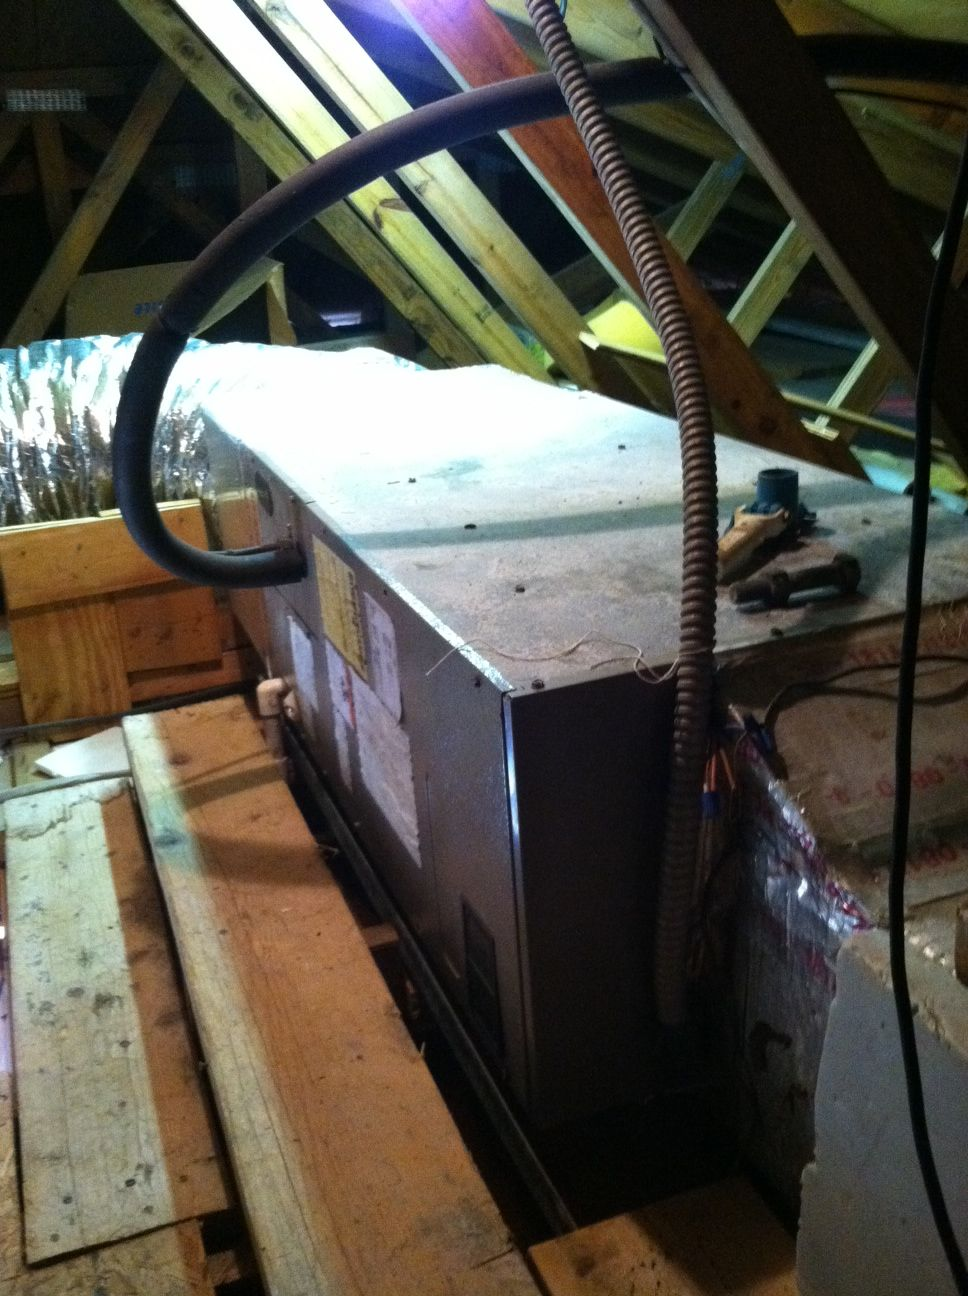 Air Handler in Attic Air handler, Attic, Air